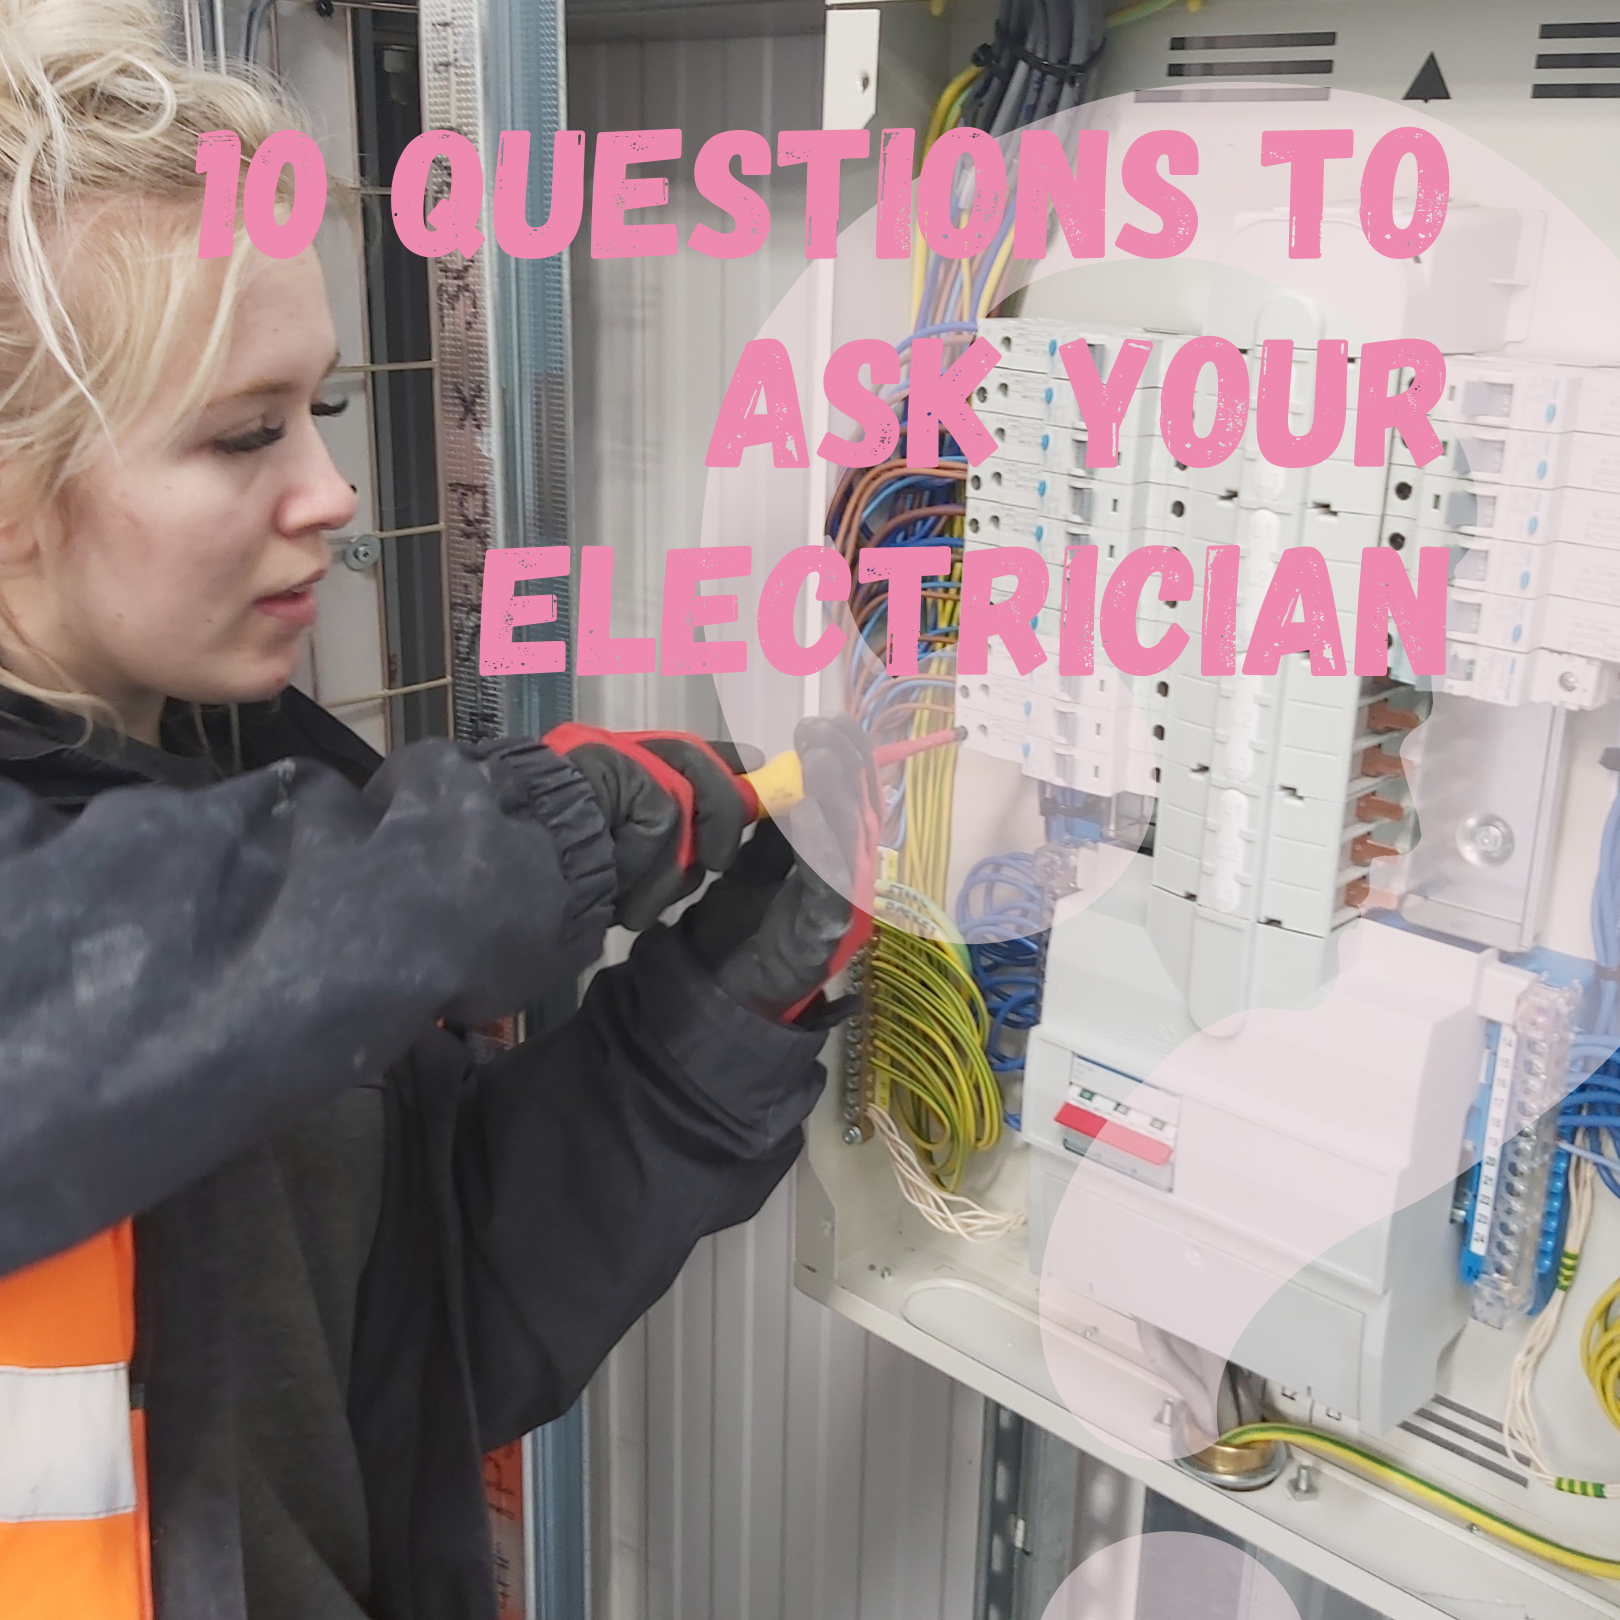 10 questions to ask an electrician